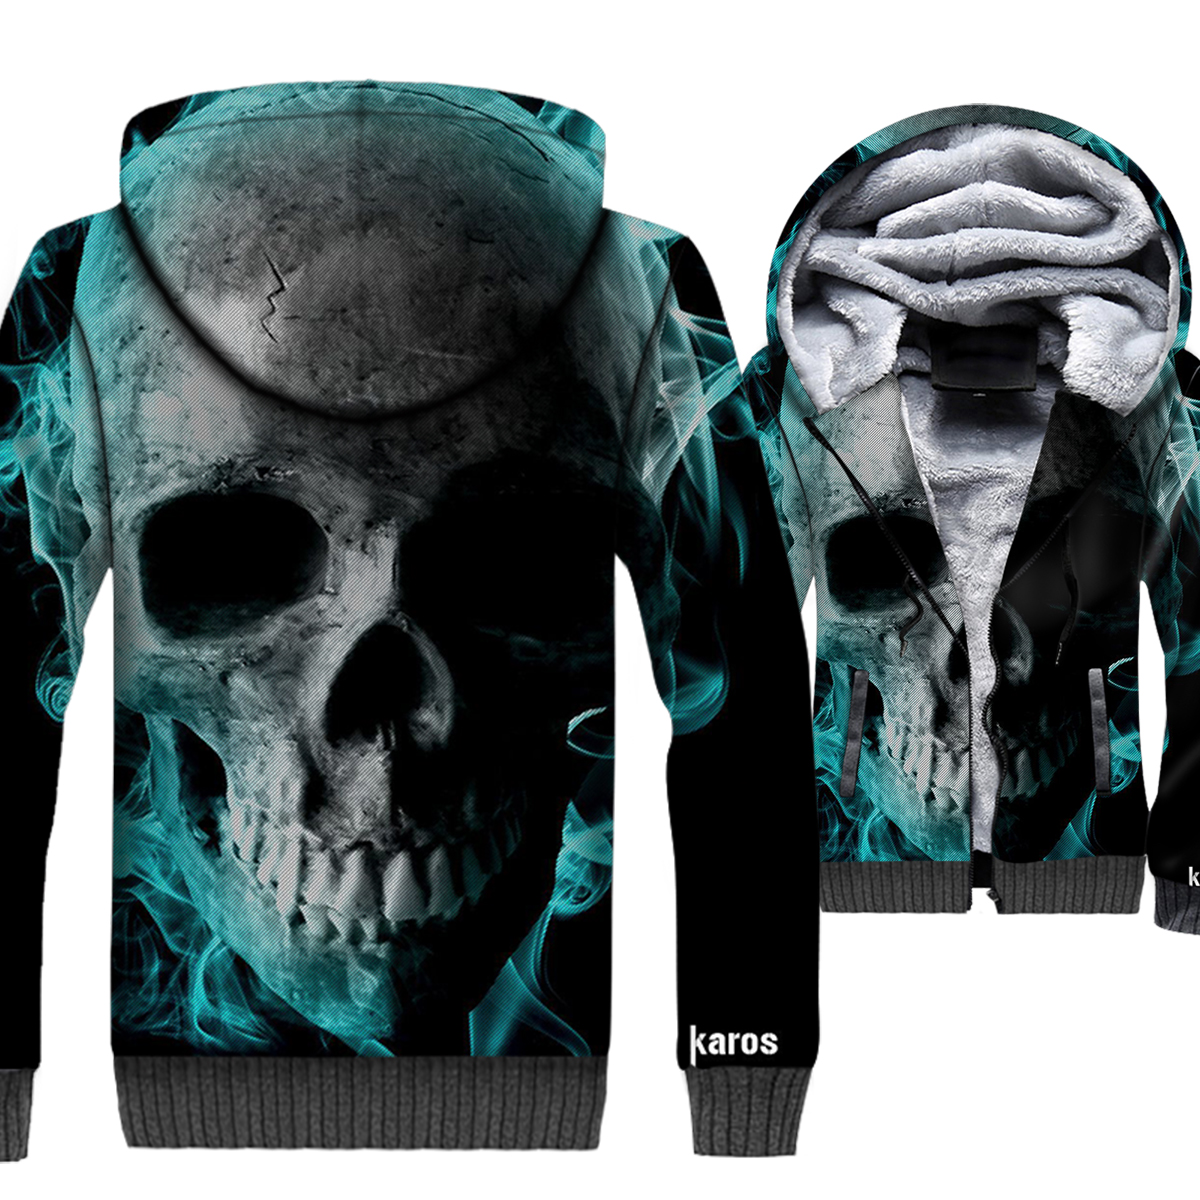 2019 Winter 3D Hoodies Skull Print Hip Hip Jackets Men Punk Gothic Sweatshirts Thick Warm Men 39 s Hooded Adult Hipster Streetwear in Jackets from Men 39 s Clothing